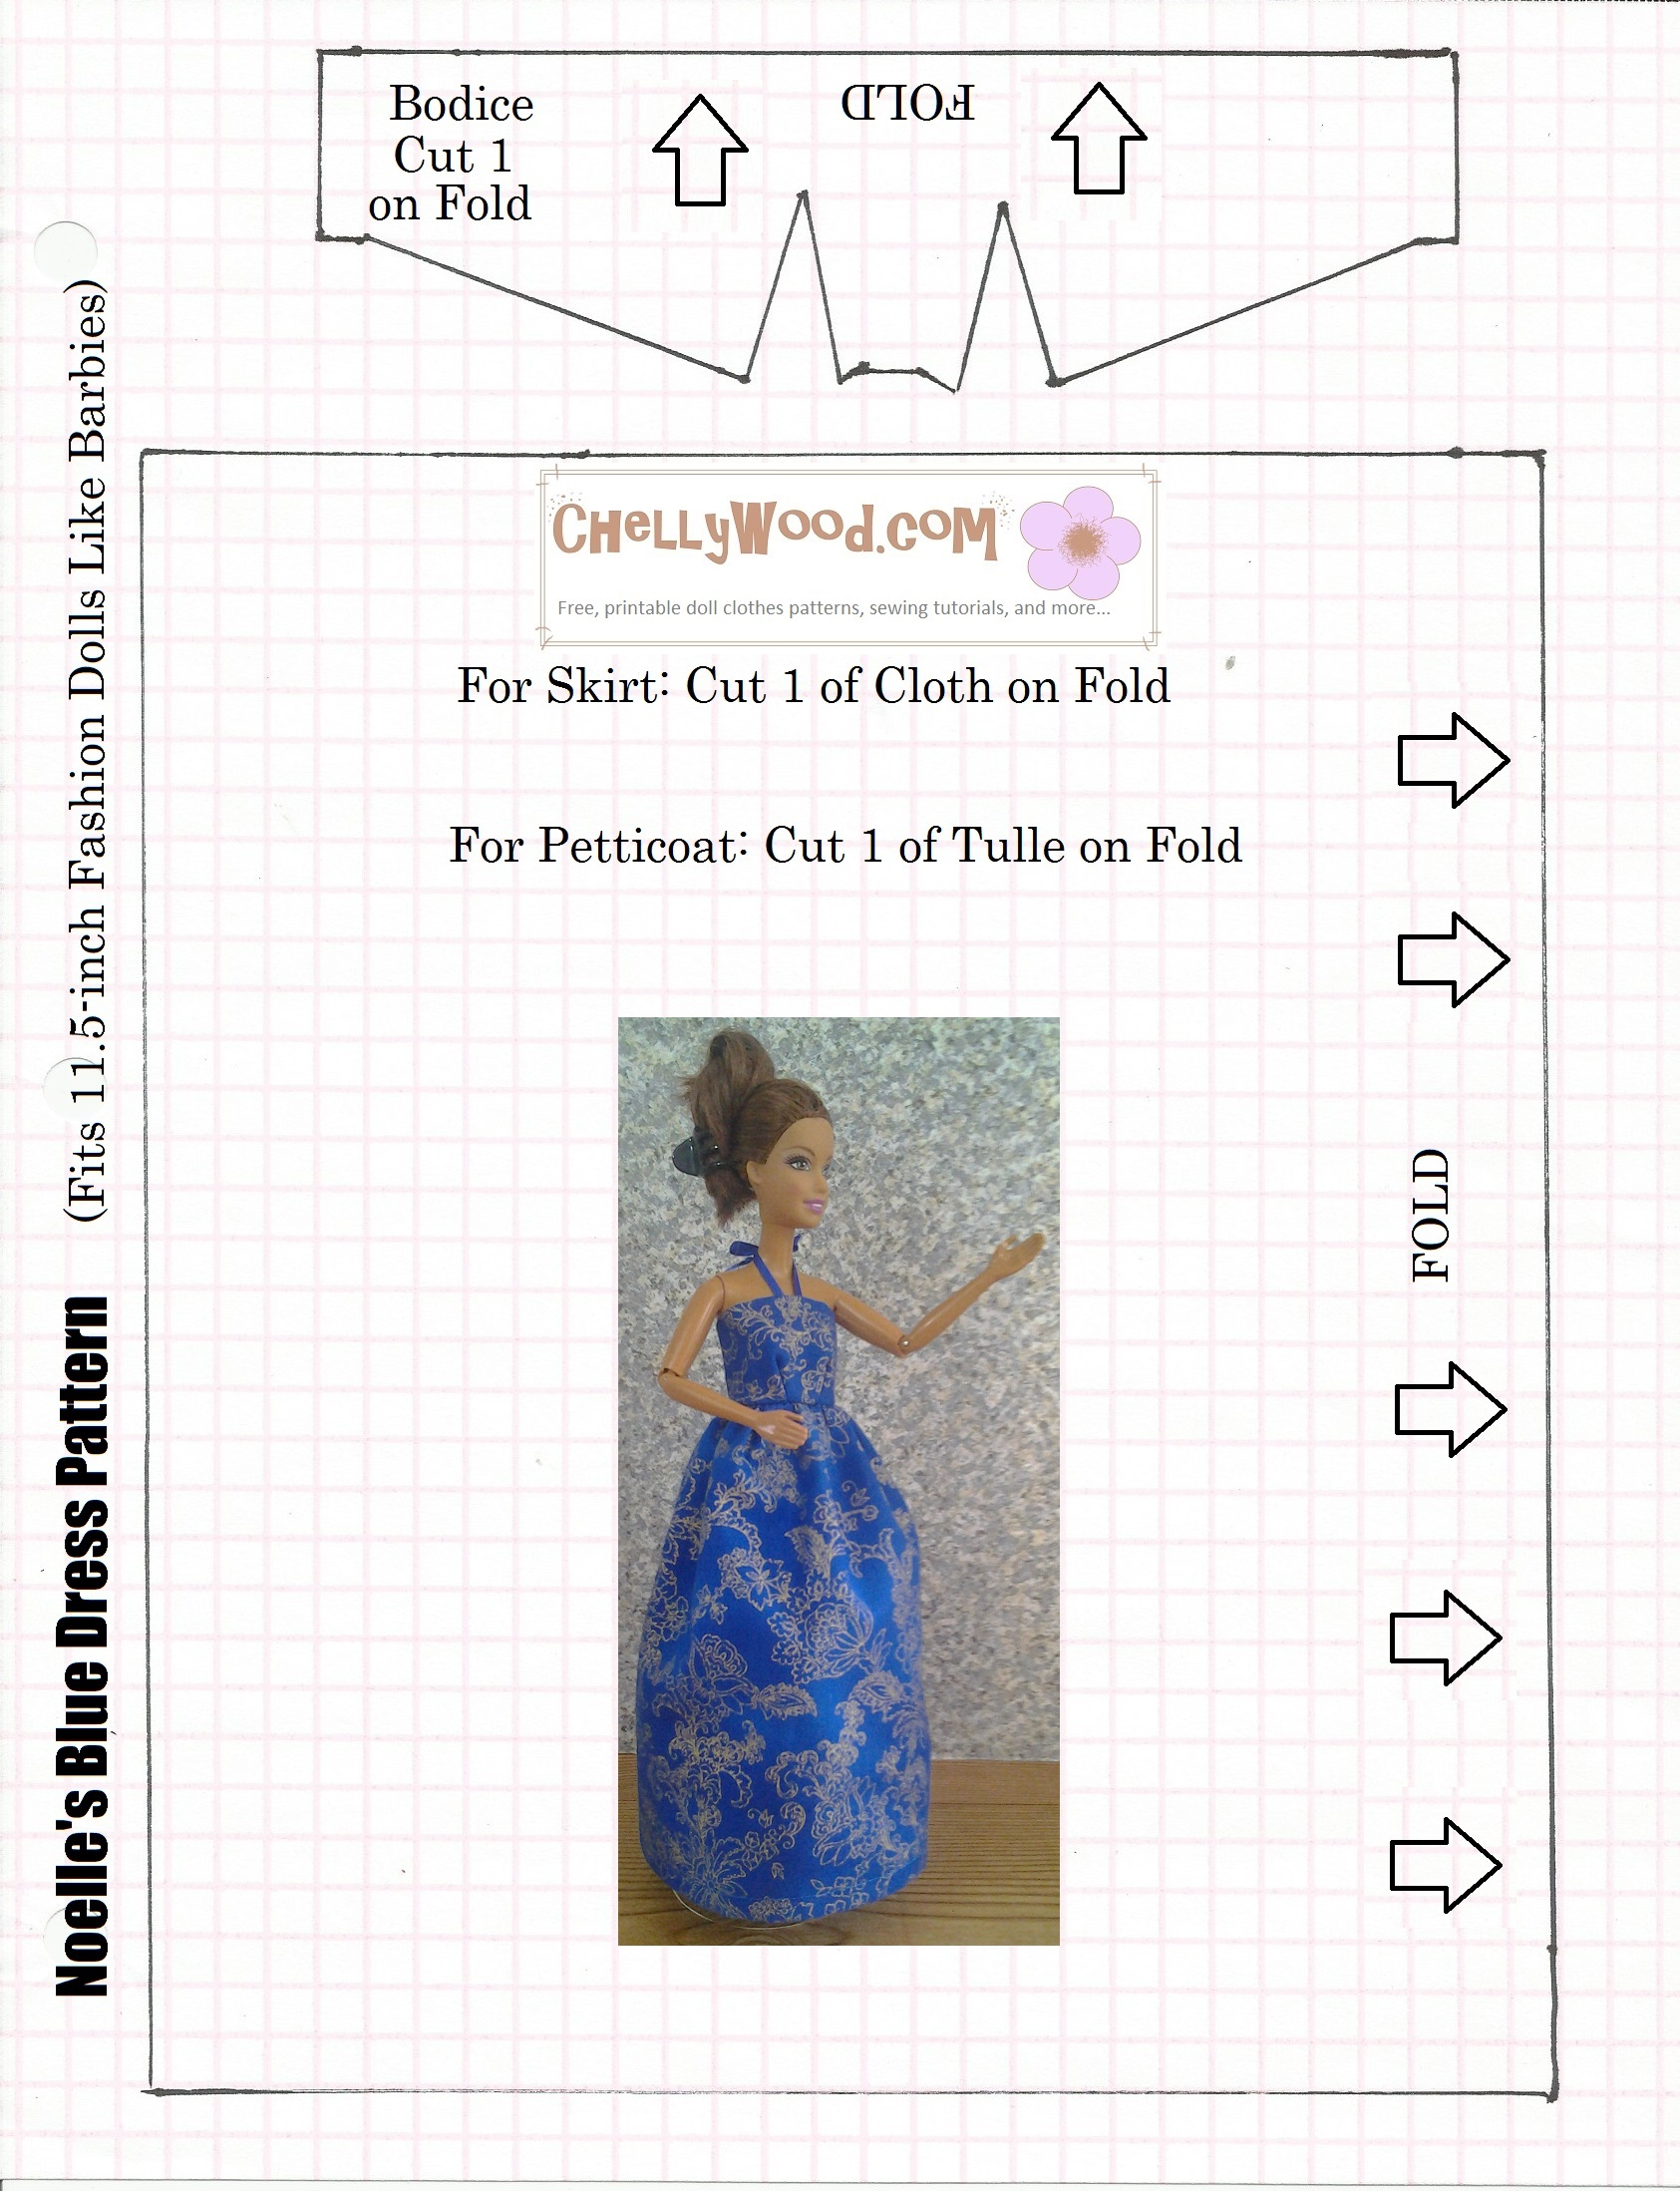 Old Pattern Page |